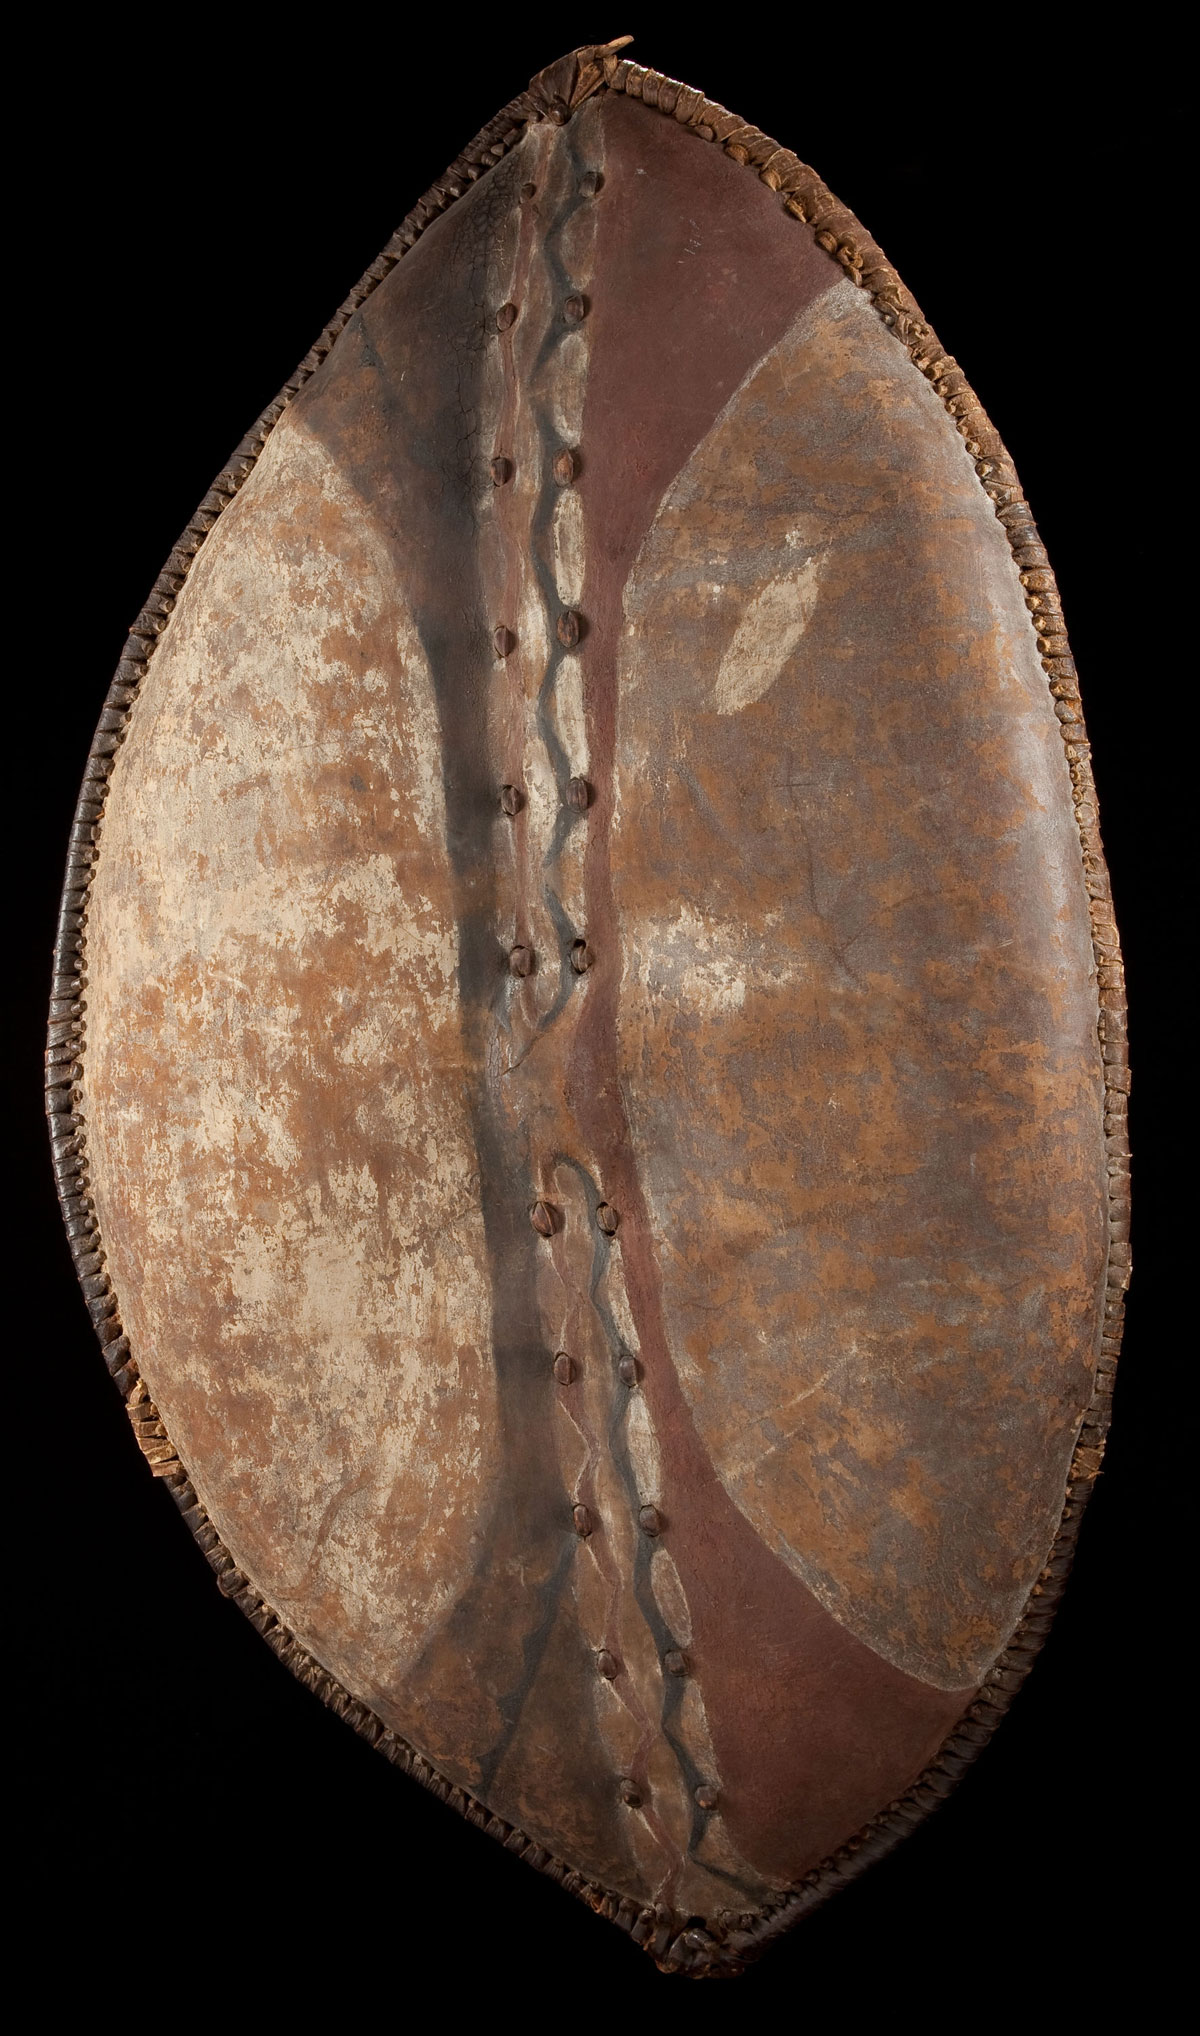 elliptical-leather-shield-from-the-Massai-or-Nandi-people